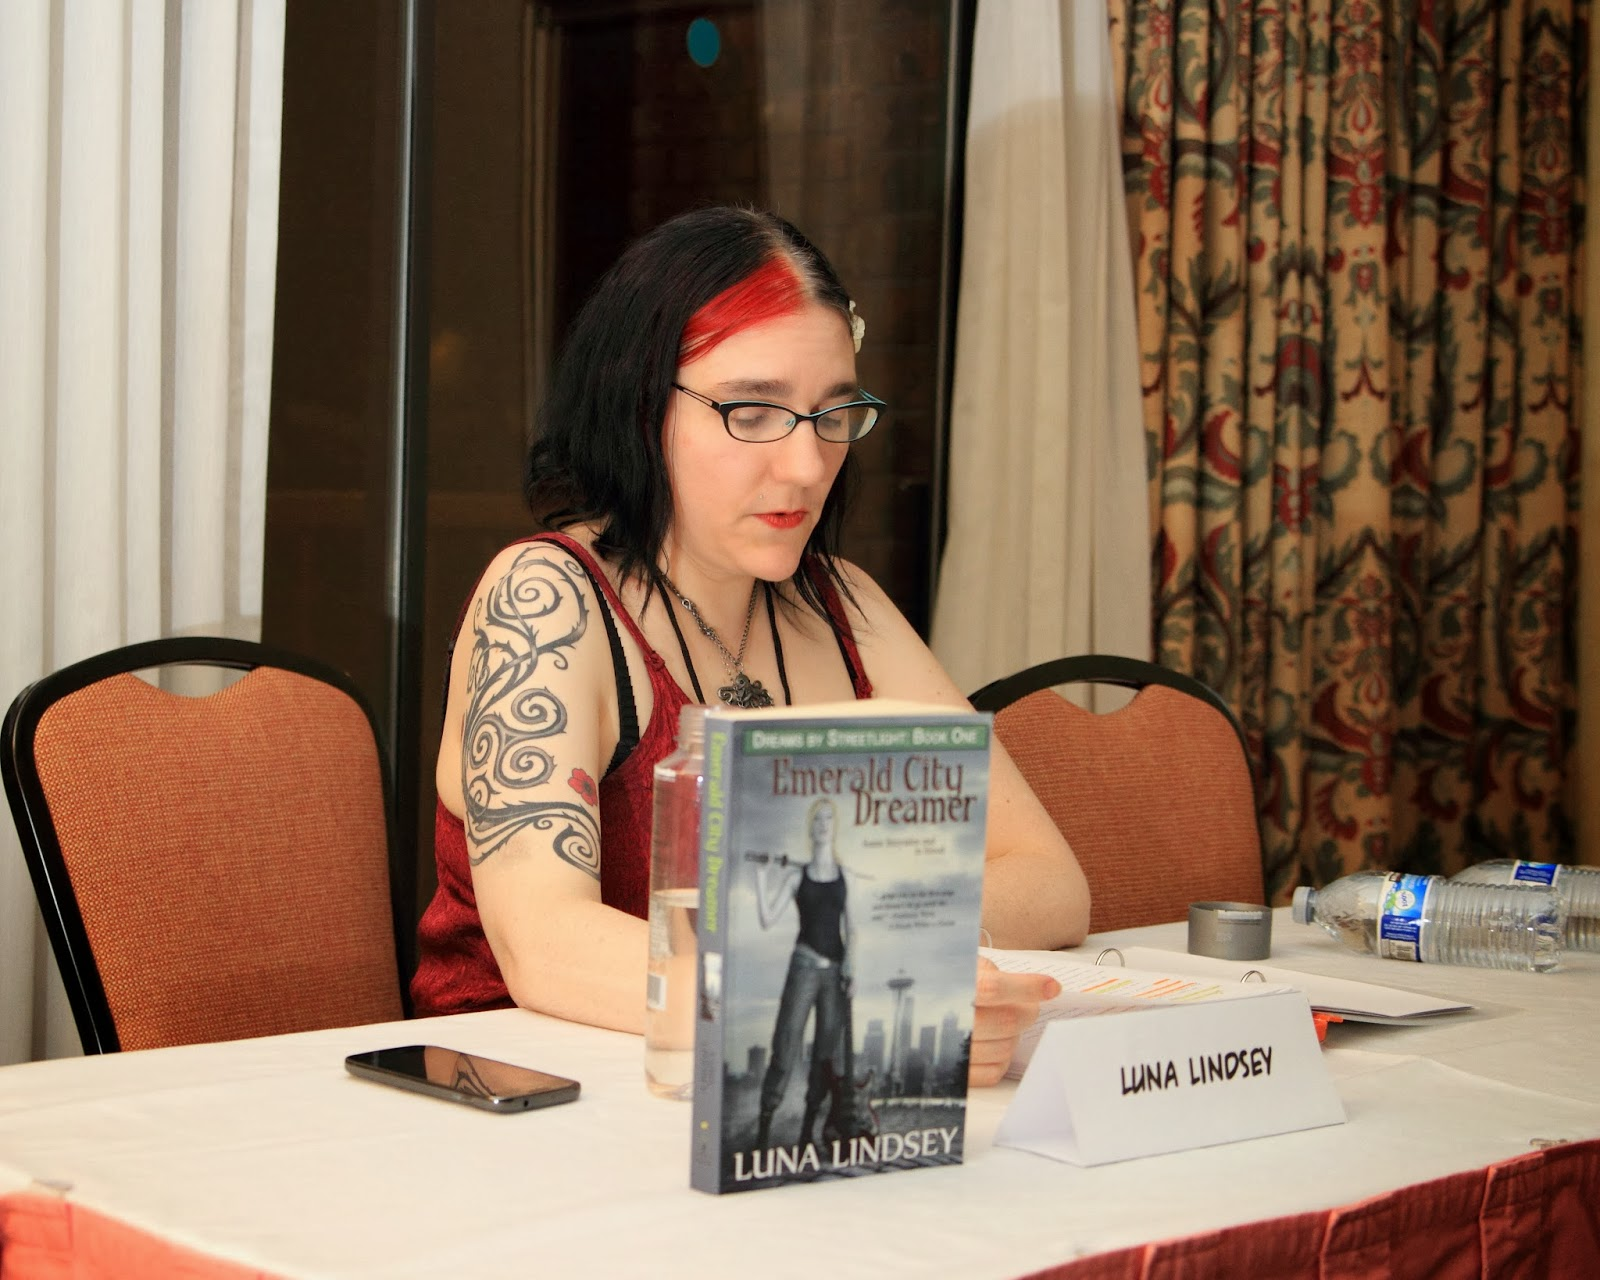 luna lindsey reading touch of tides from crossed genres magazine